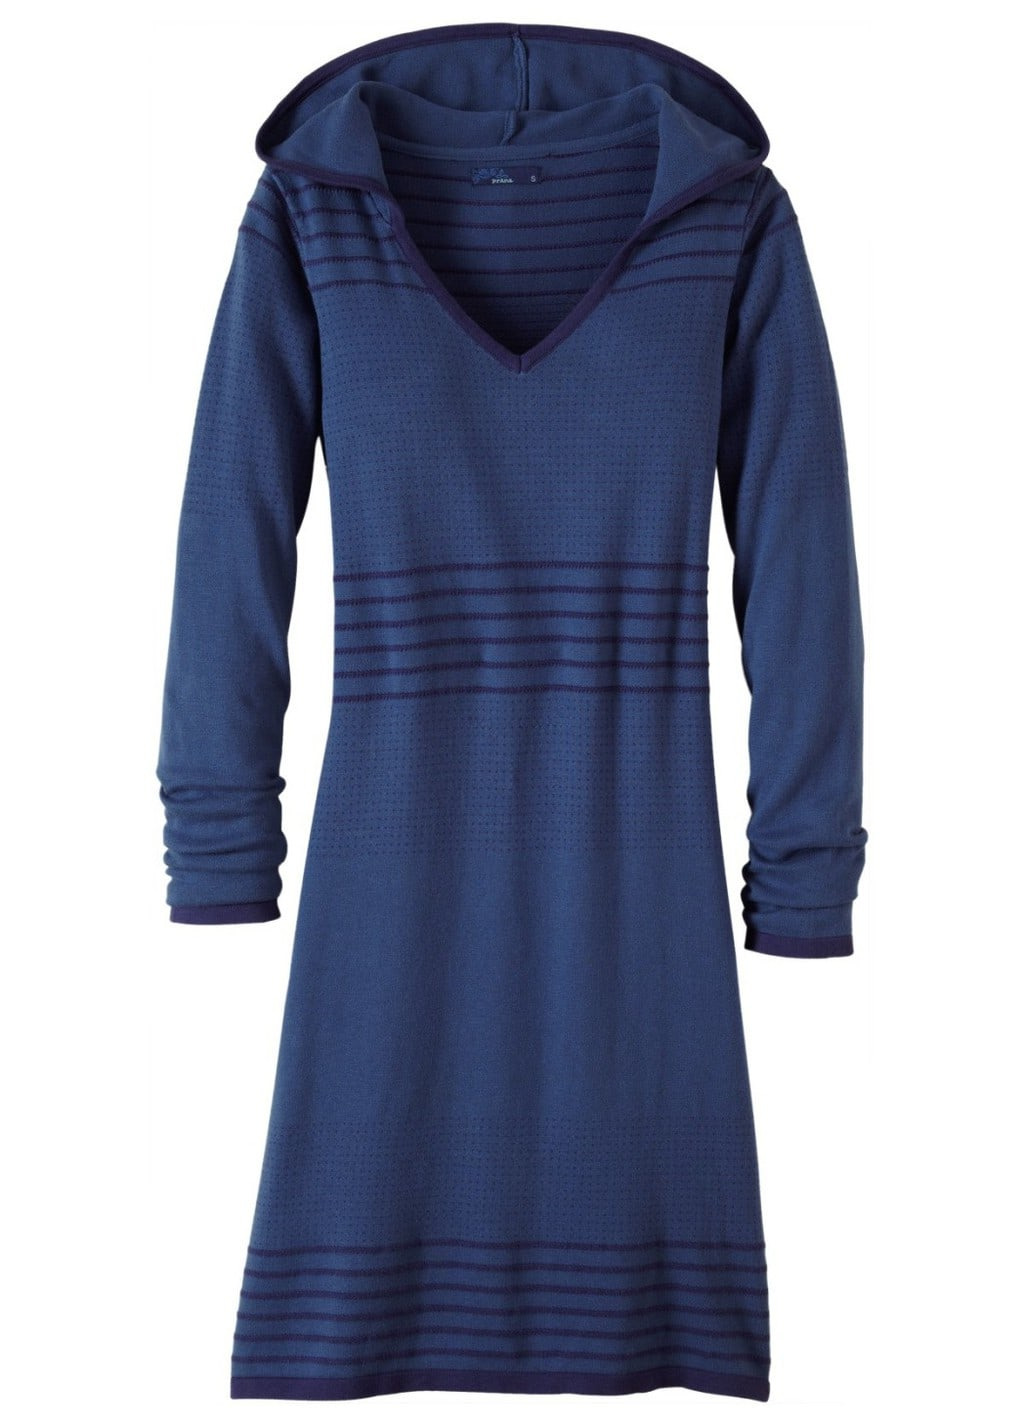 Holiday Gift Giving That Gives Back With prAna Mariette Dress